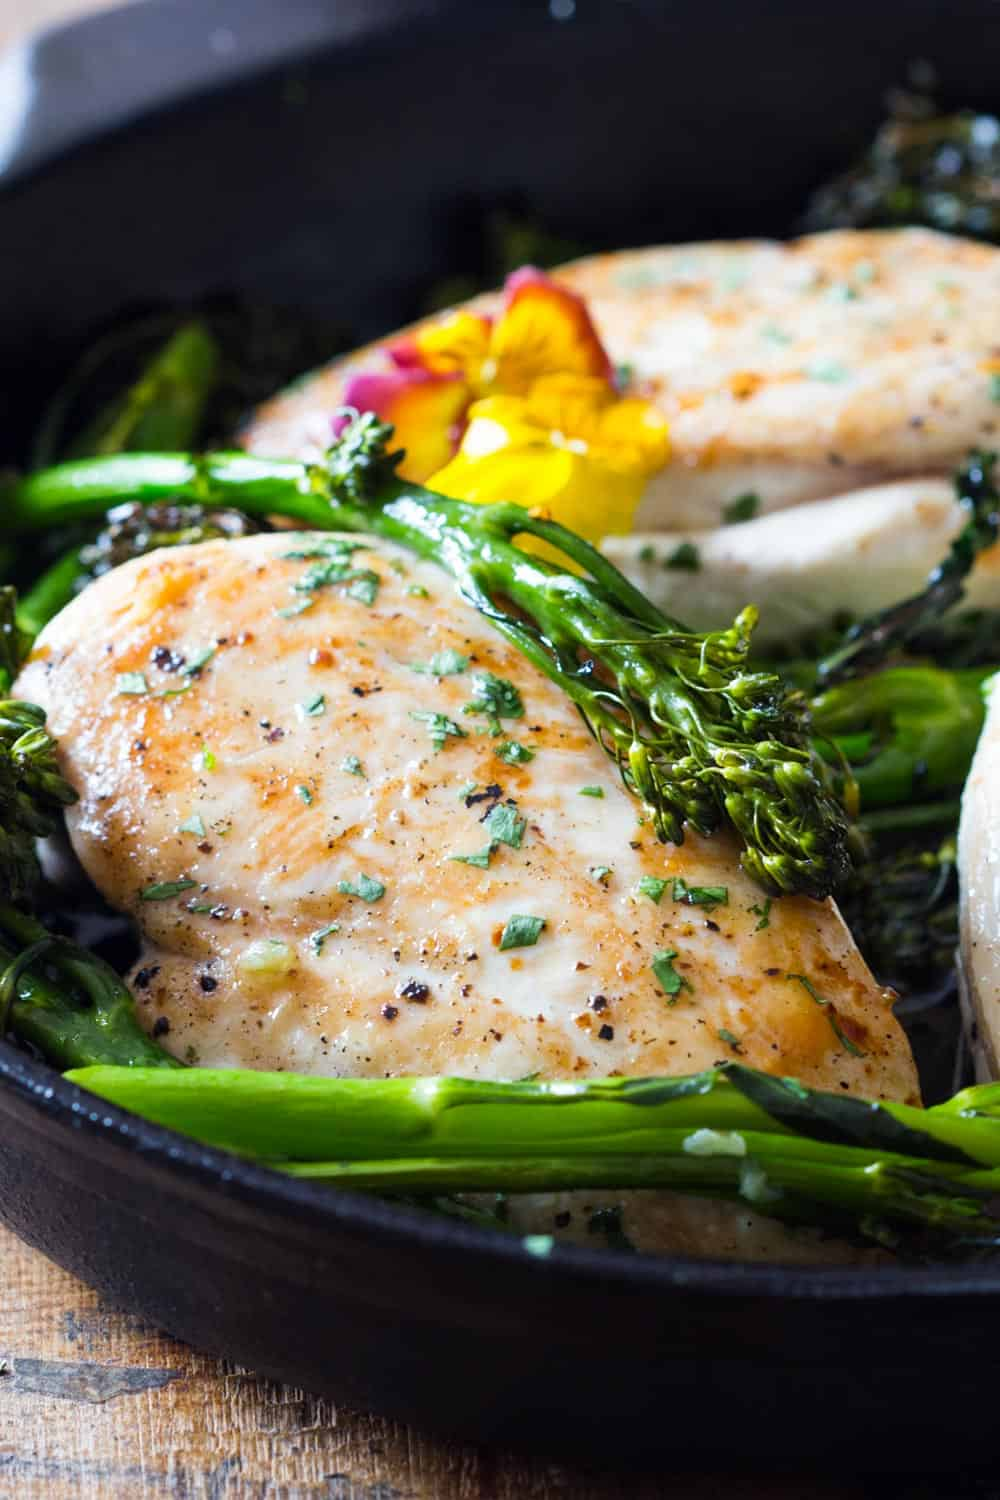 5 minutes prep and one pan is all you need to make this chicken and broccolini. There is no better busy weeknight dinner than one that gives time to have a glass of wine while dinner makes itself ;)